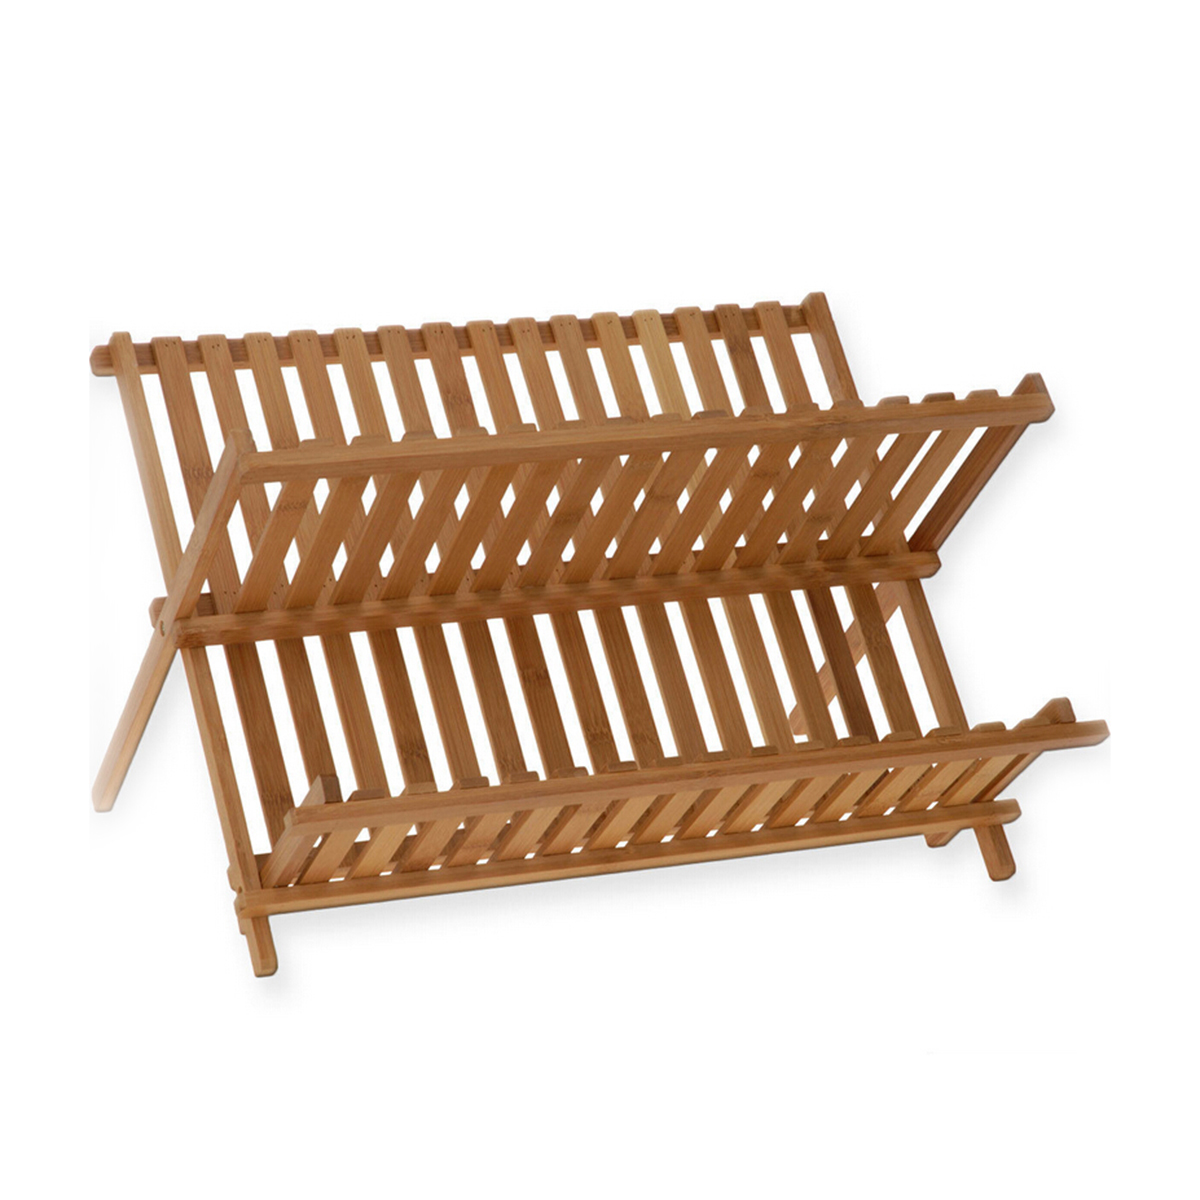 Natural Bamboo Dish Drying Rack Flatware Holder Plate Storage Utensil Drainer Collapsible Compact Wooden Dinner Plates  sc 1 st  AliExpress.com & Natural Bamboo Dish Drying Rack Flatware Holder Plate Storage ...